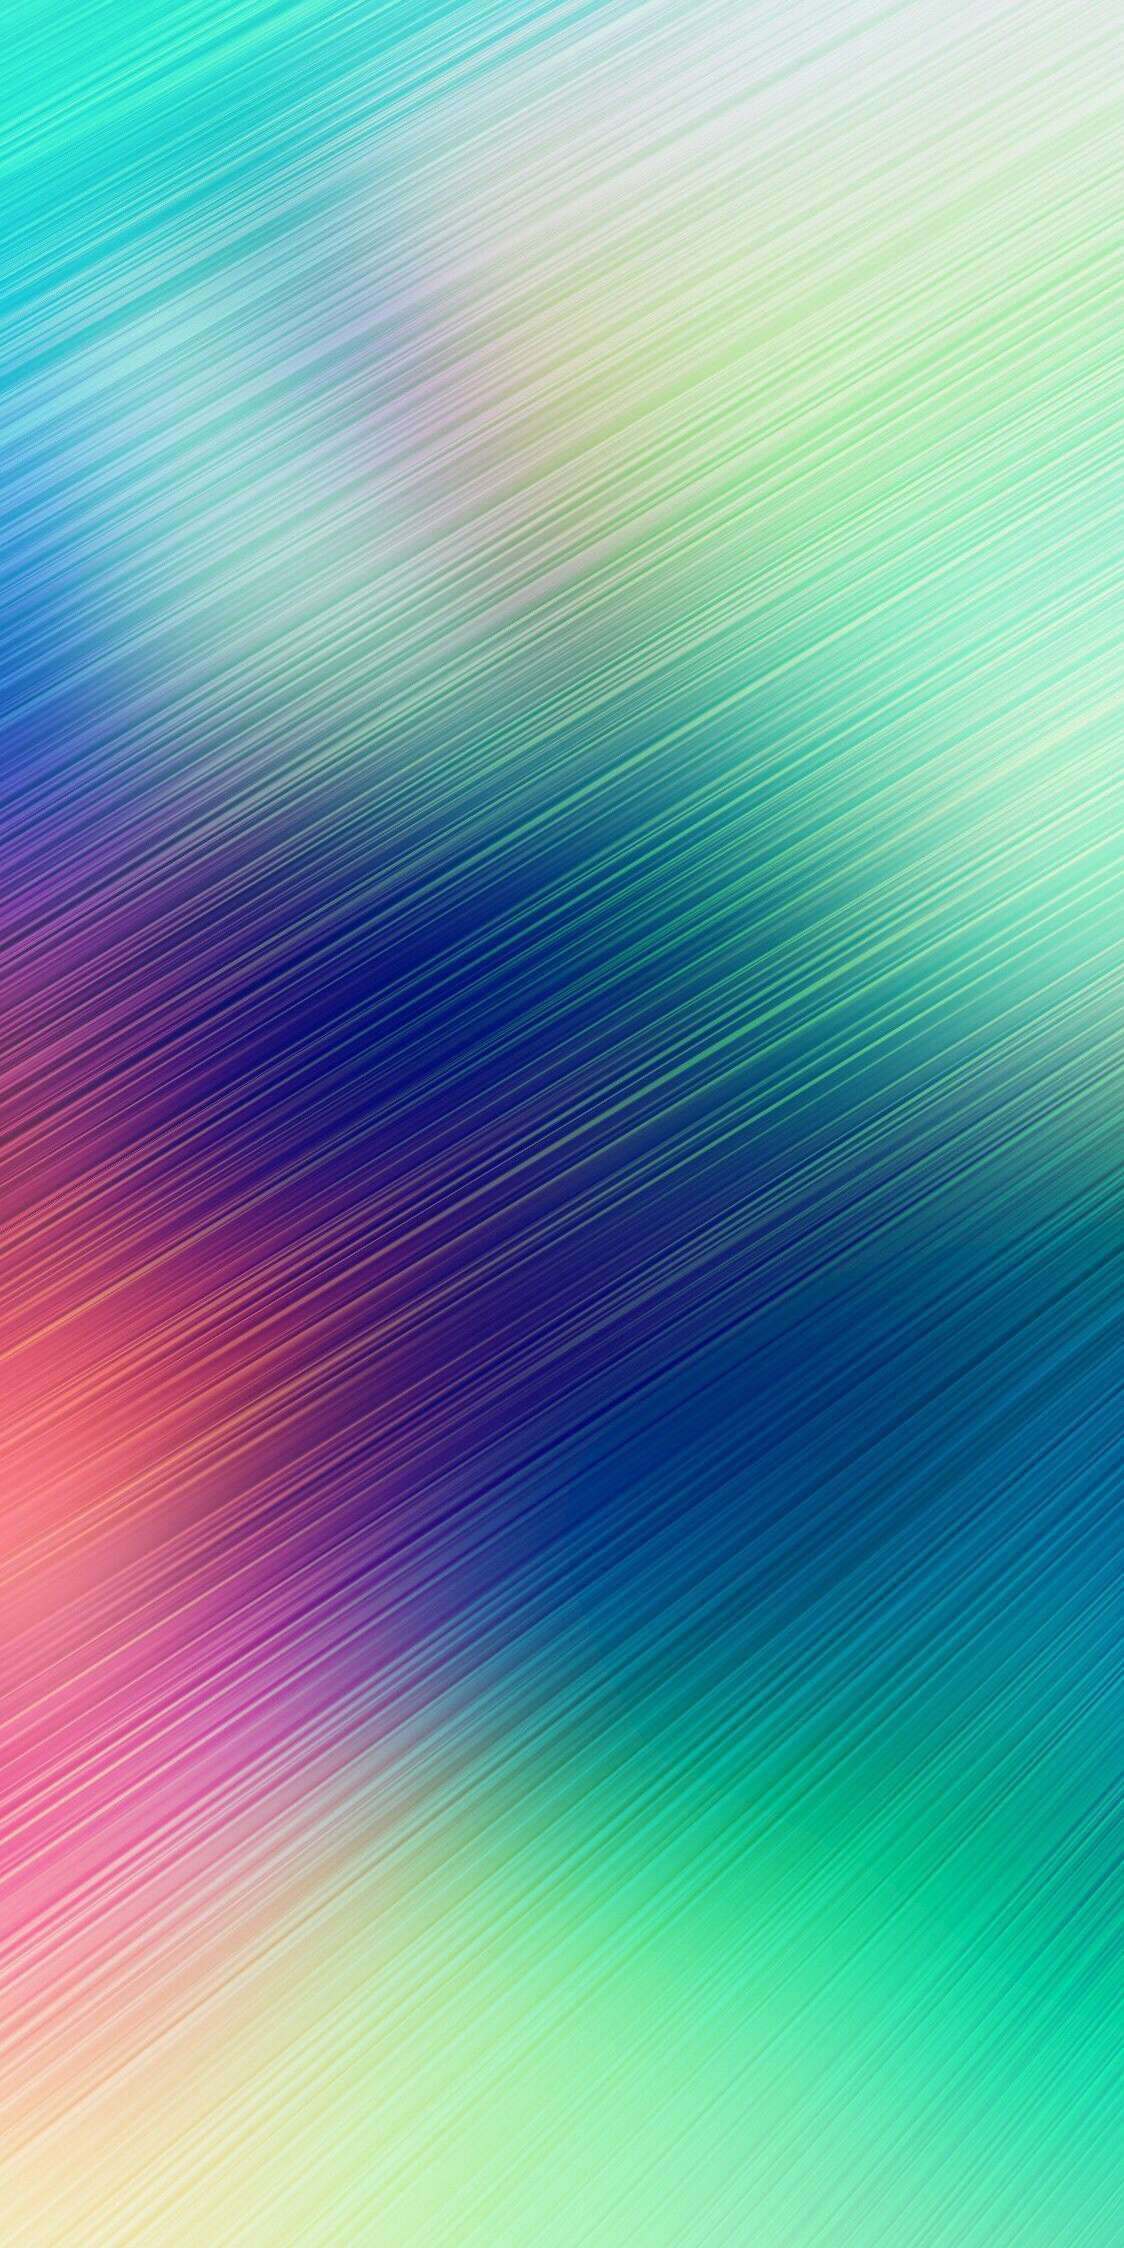 List of Cool Wallpaper for iPhone 6S / 6S Plus This Month